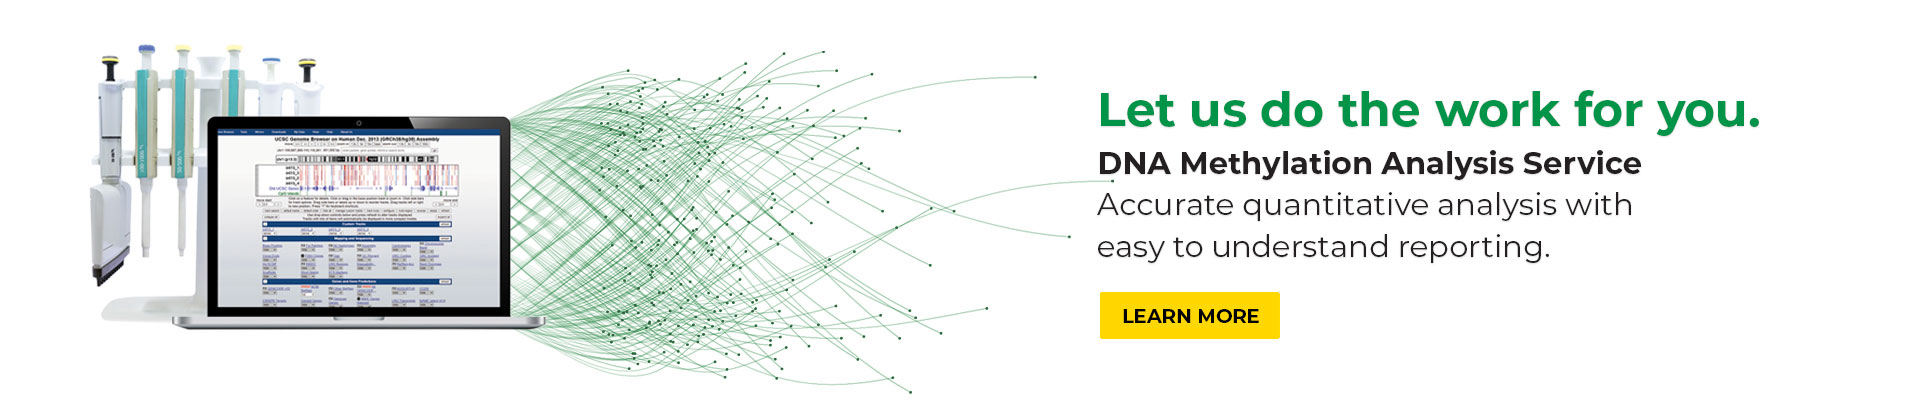 home page carousel banner for the Genmoe-Wide DNA Methylation Analysis